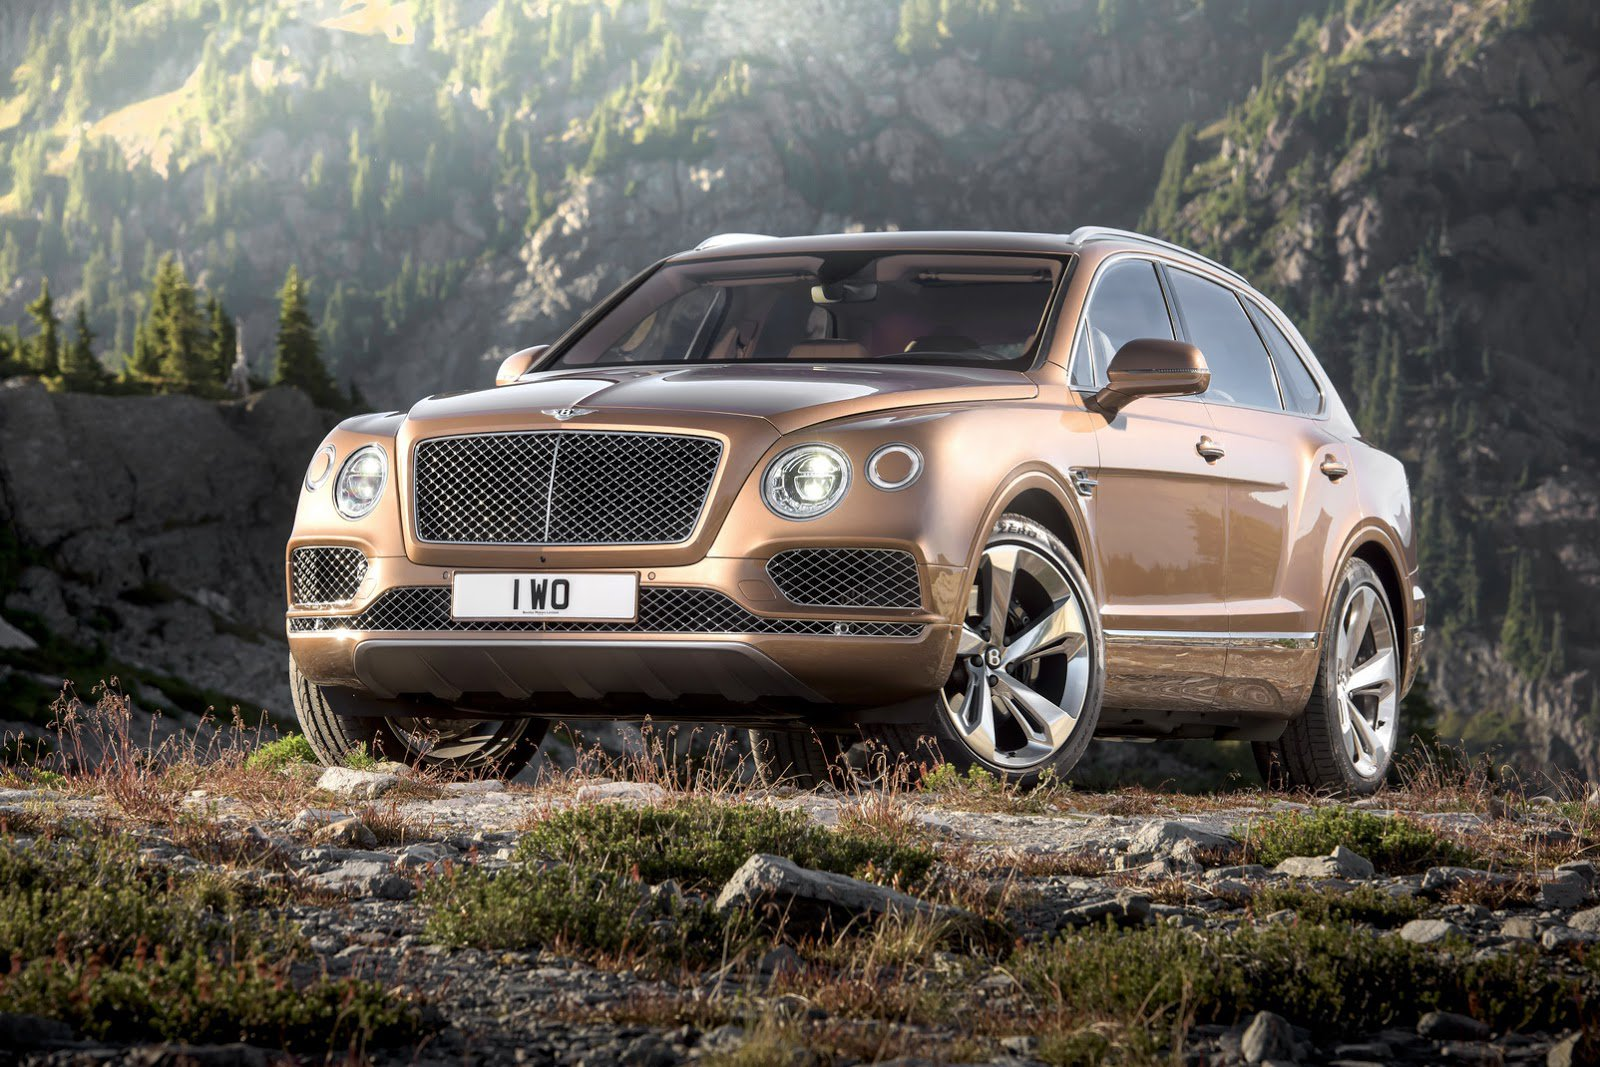 bentley bentayga the fastest most powerful most luxurious suv in the world 9 muscle cars zone. Black Bedroom Furniture Sets. Home Design Ideas